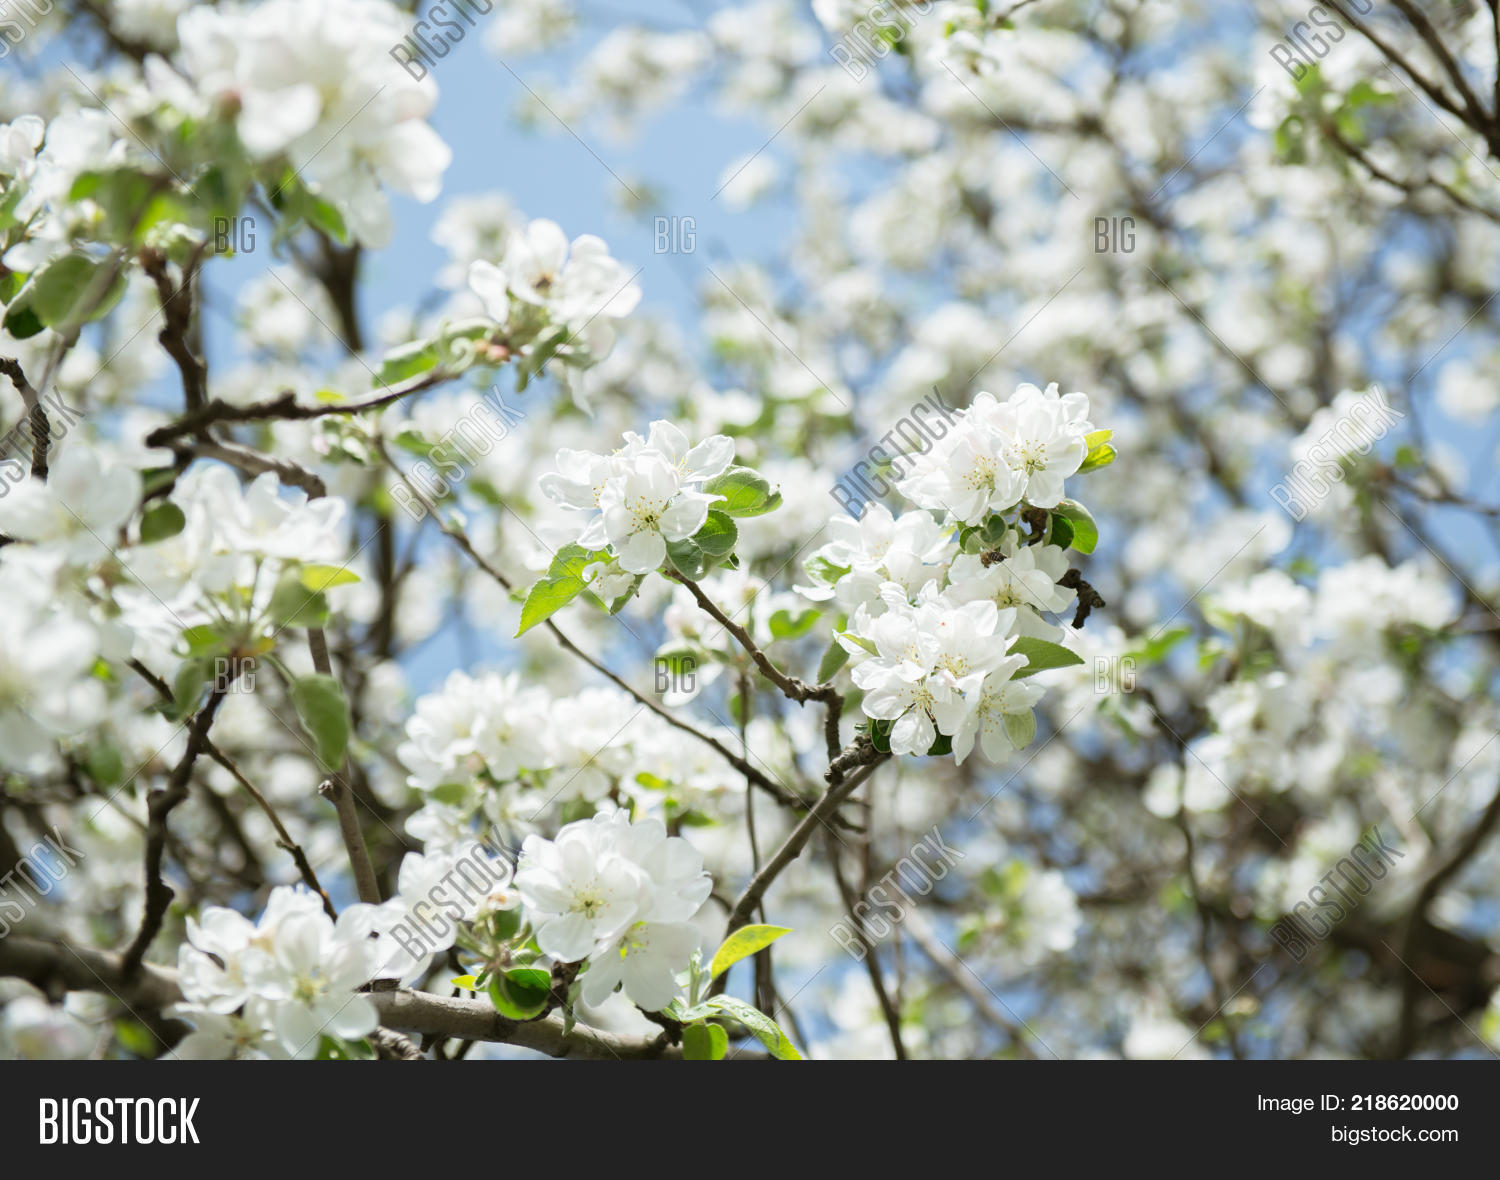 Apple blossoms image photo free trial bigstock blooming apple tree branch with large white flowers flowering spring mightylinksfo